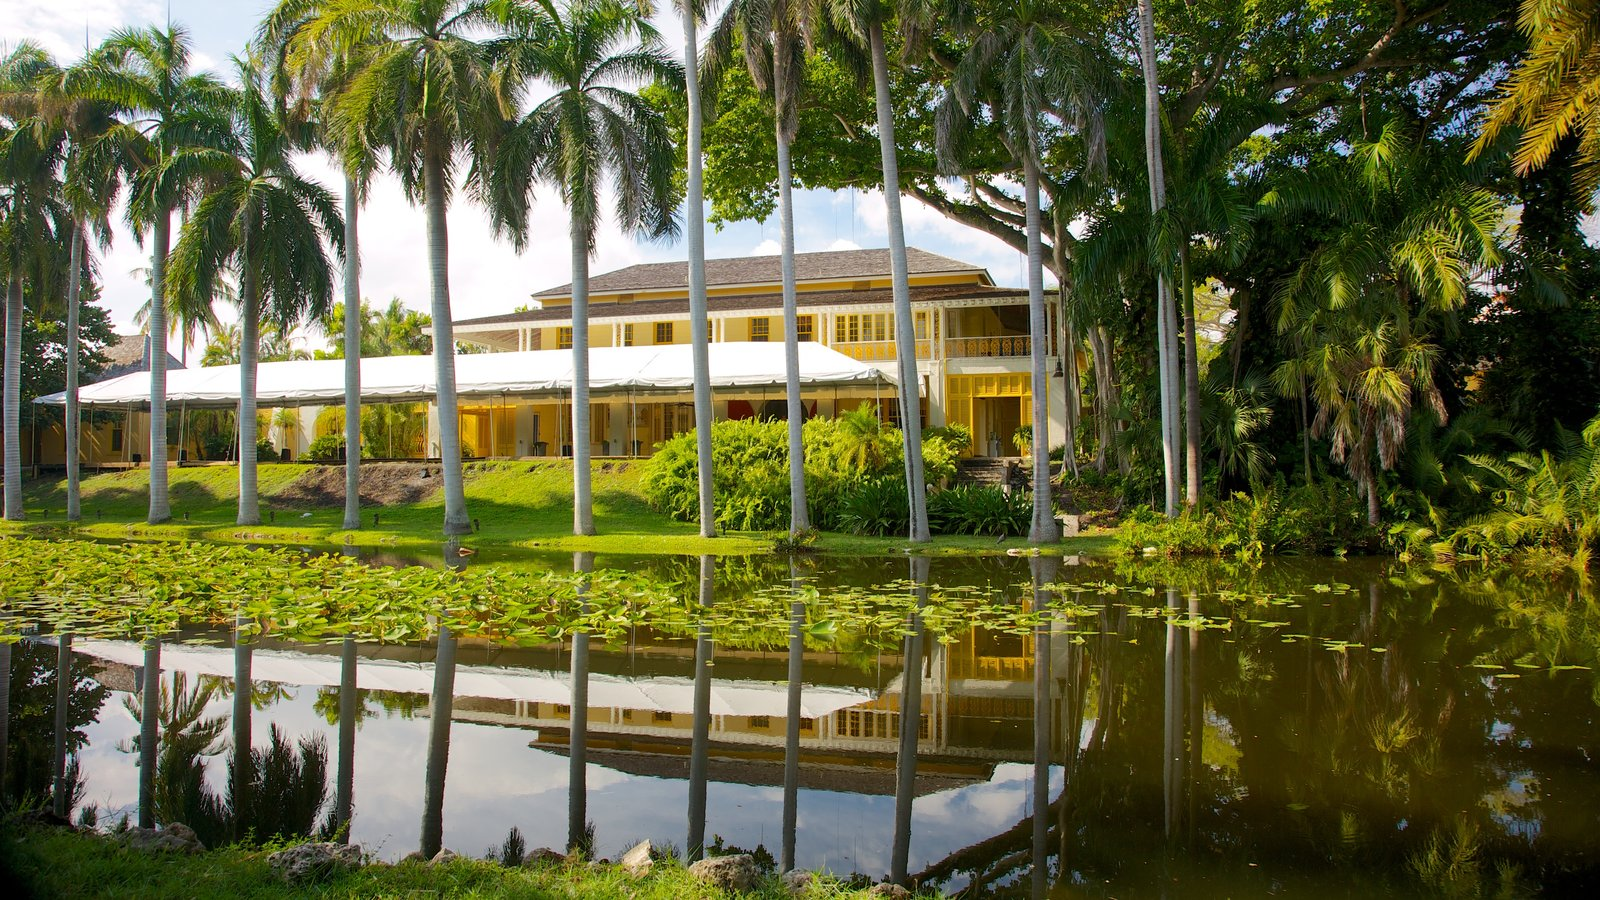 Museum Pictures: View Images of Bonnet House Museum and Gardens